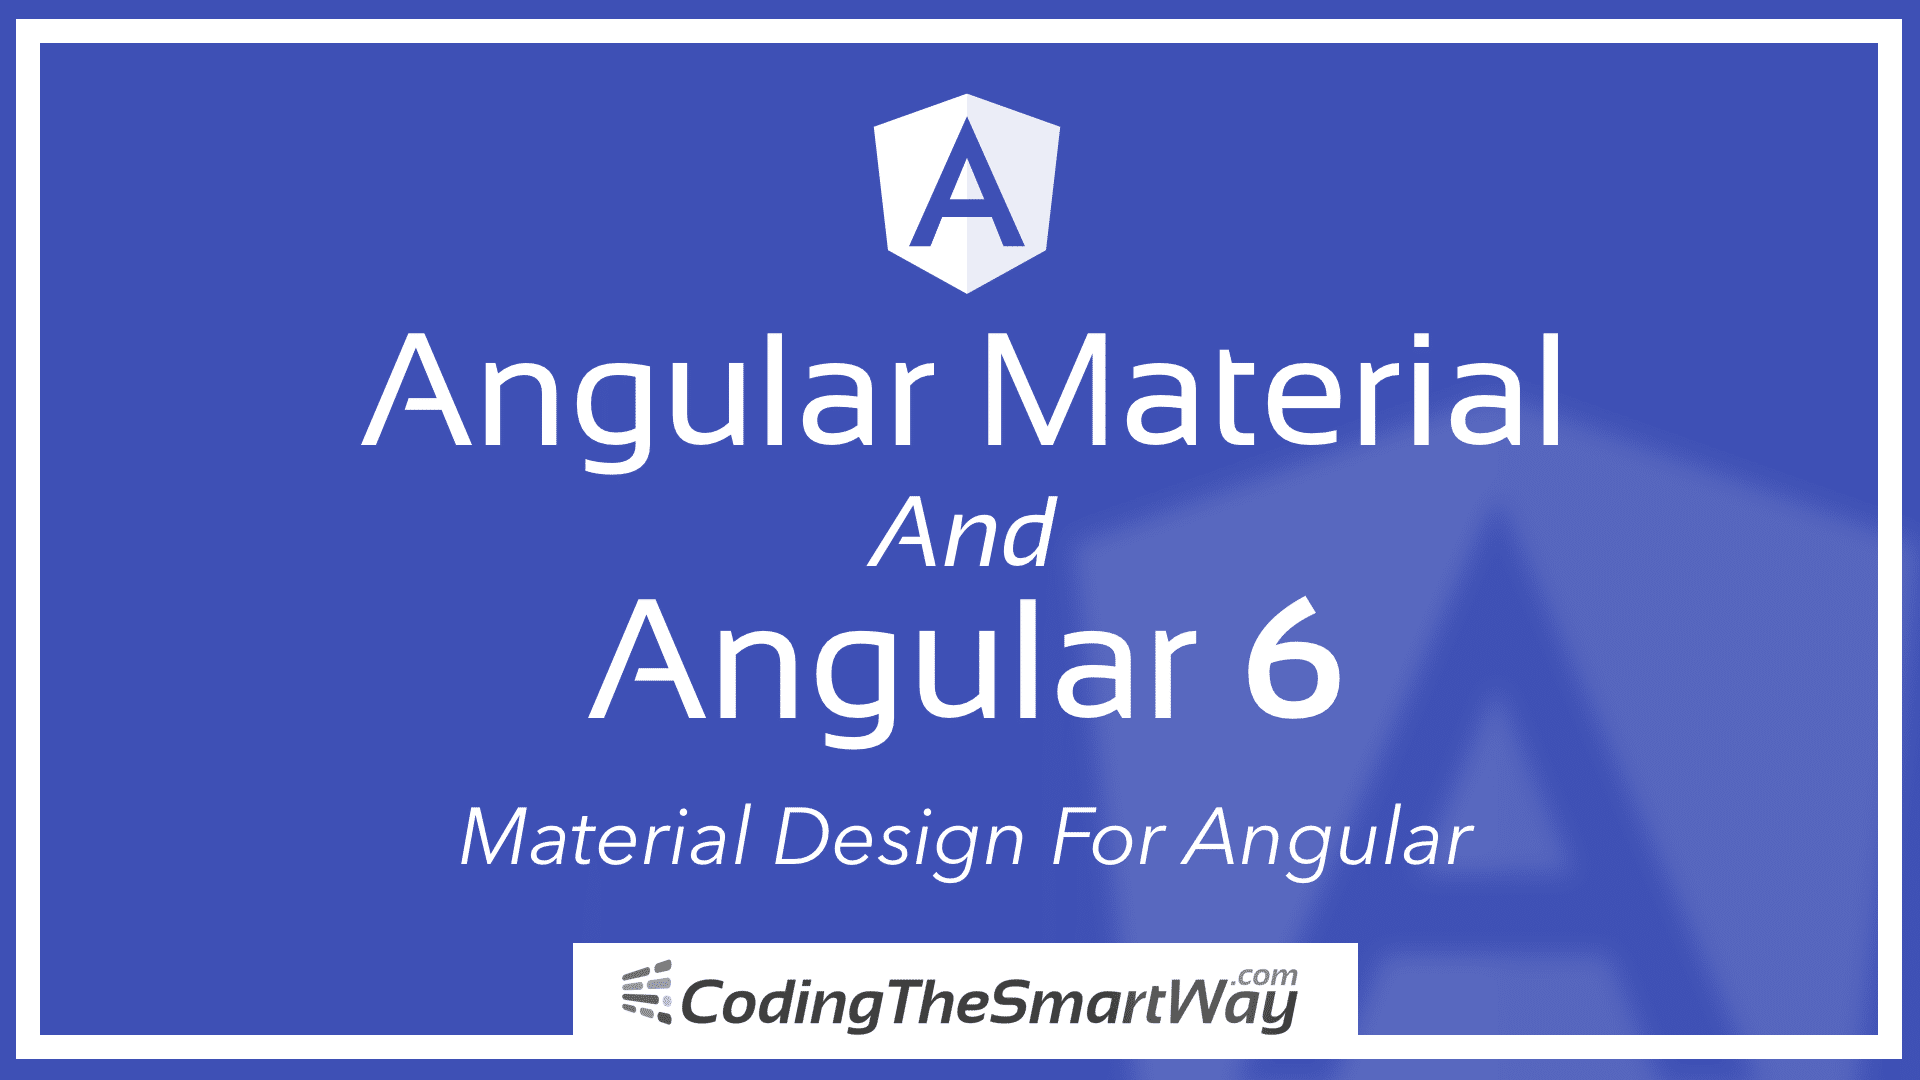 Angular Material And Angular 6 - Material Design For Angular